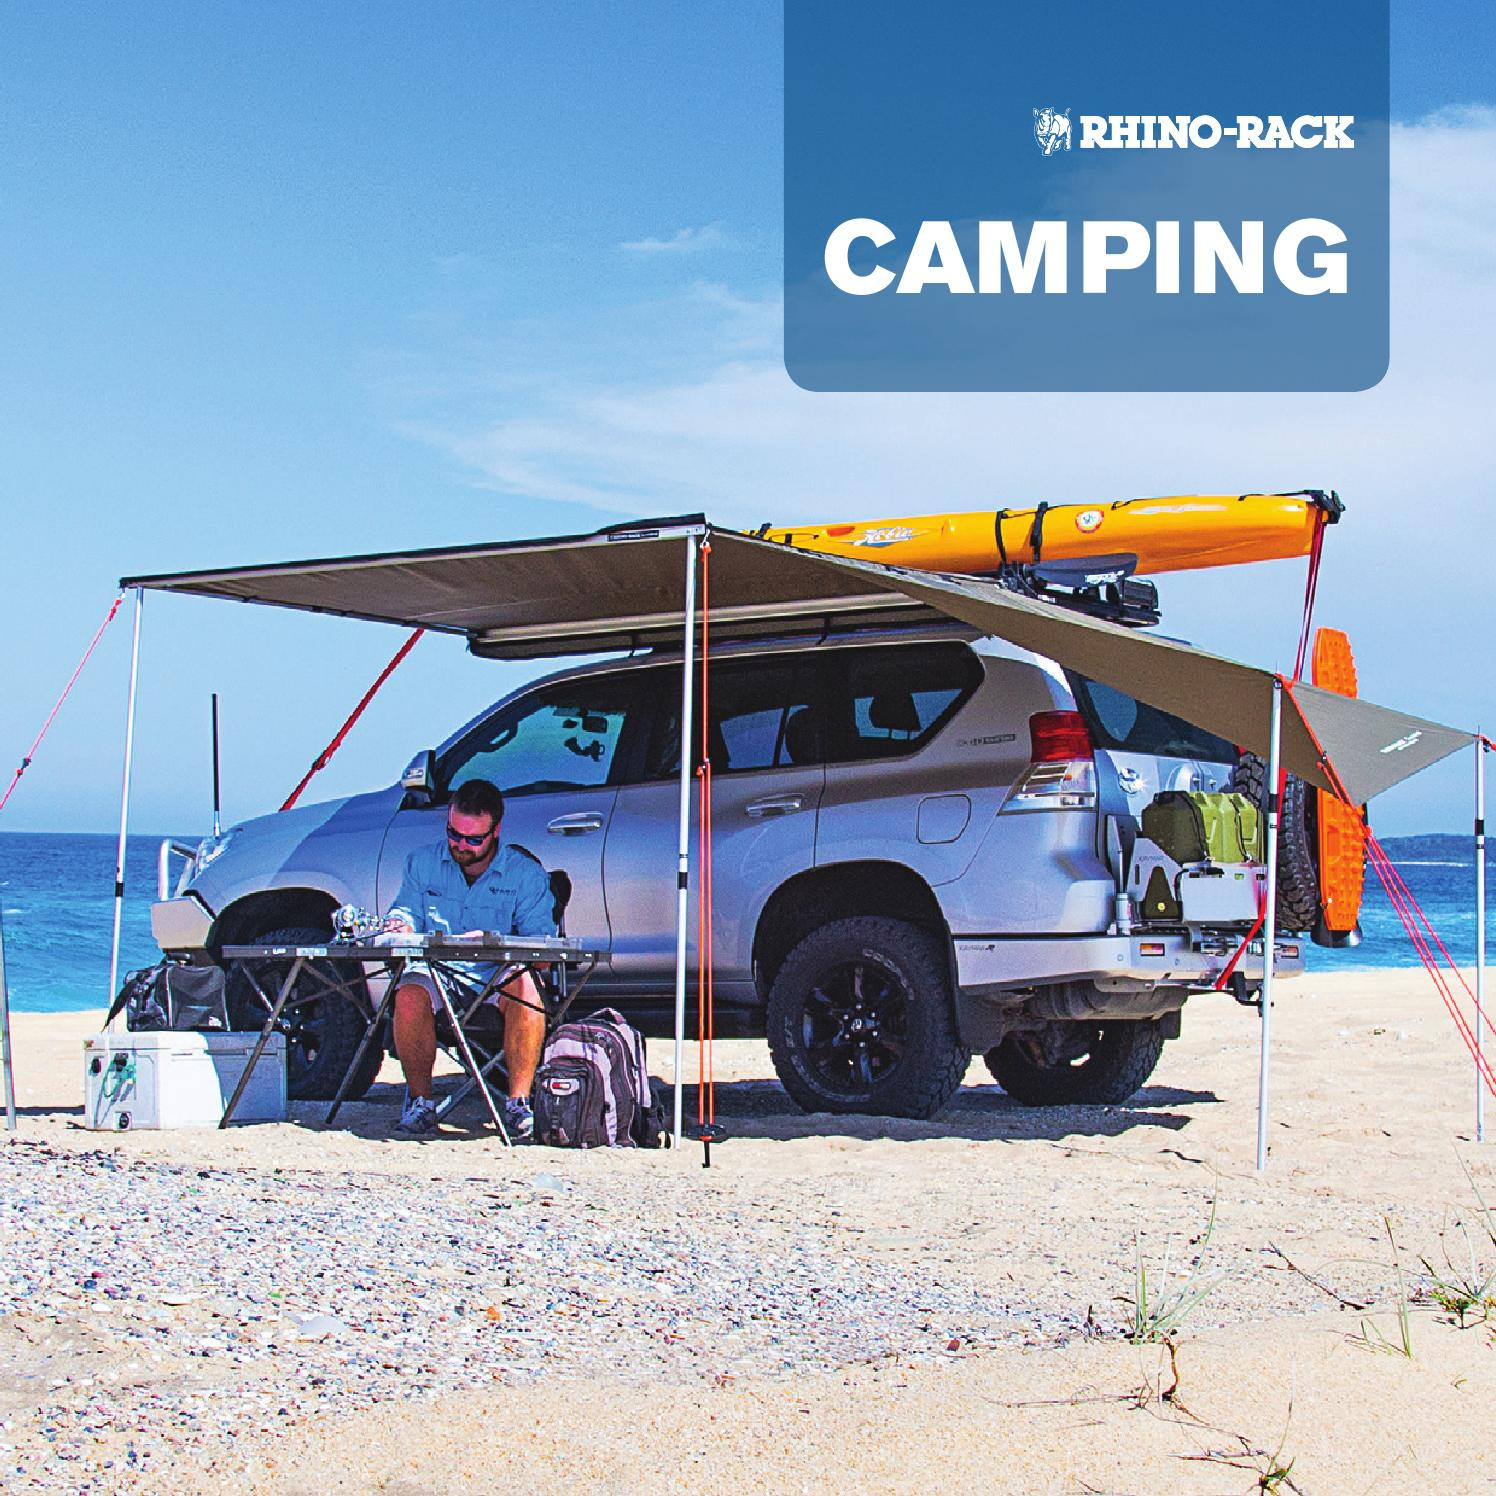 Rhino Rack Camping Brochure 2015 By